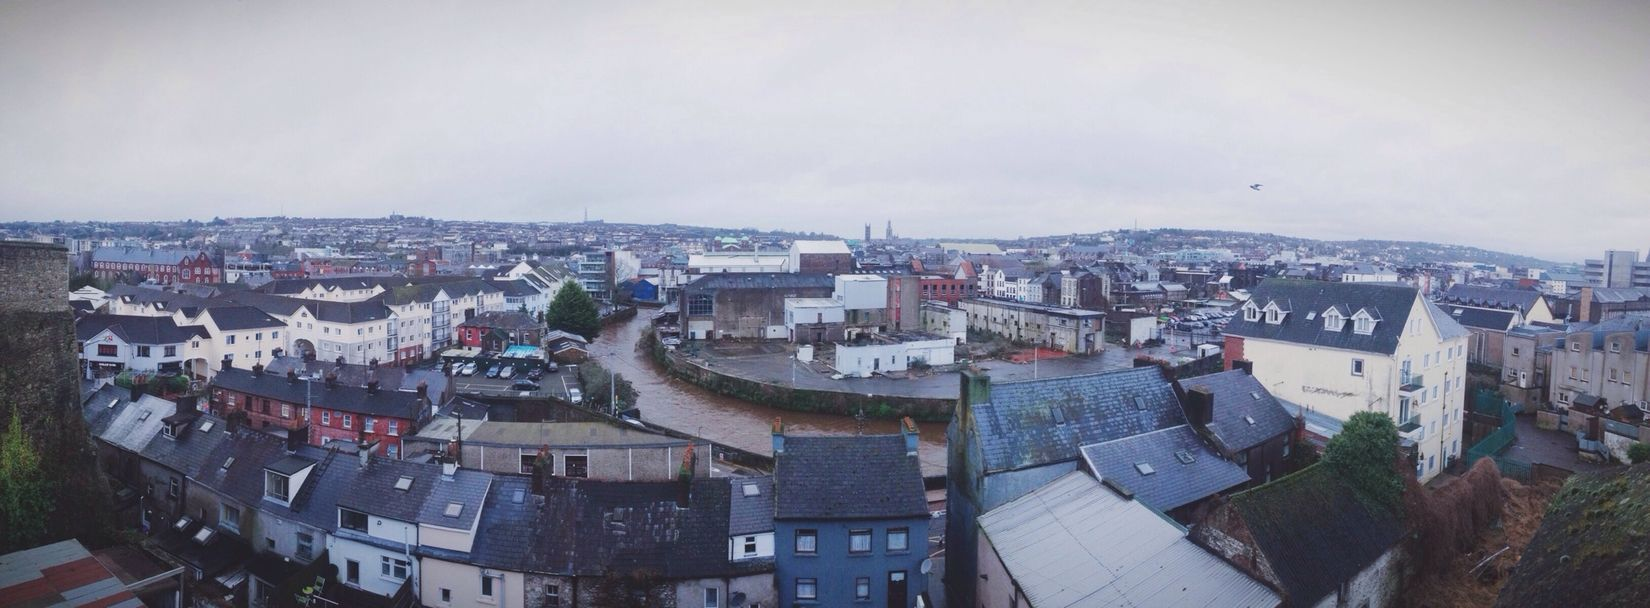 Cork City Vscocam IPhoneography Cityscapes City View  Panoramic Photography Panoramic Ireland🍀